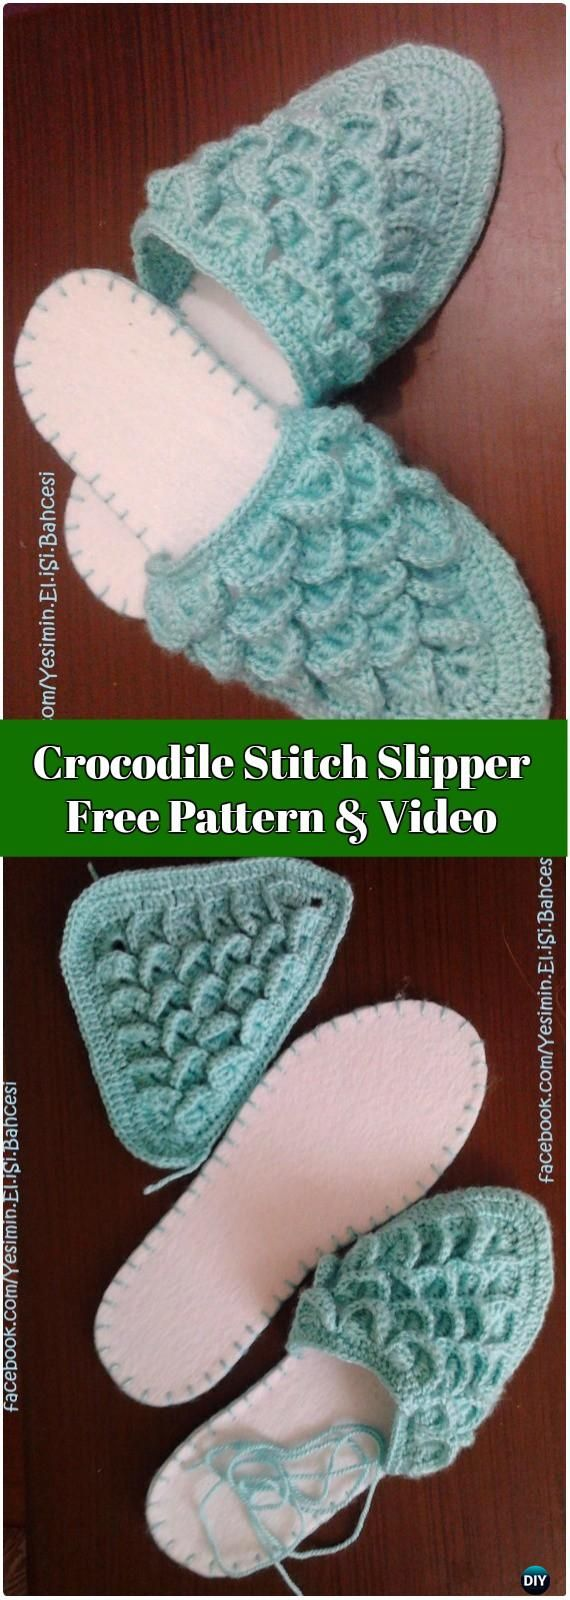 Crochet Crocodile Stitch Slippers Free Pattern Video - Crochet Women Slippers Free Patterns